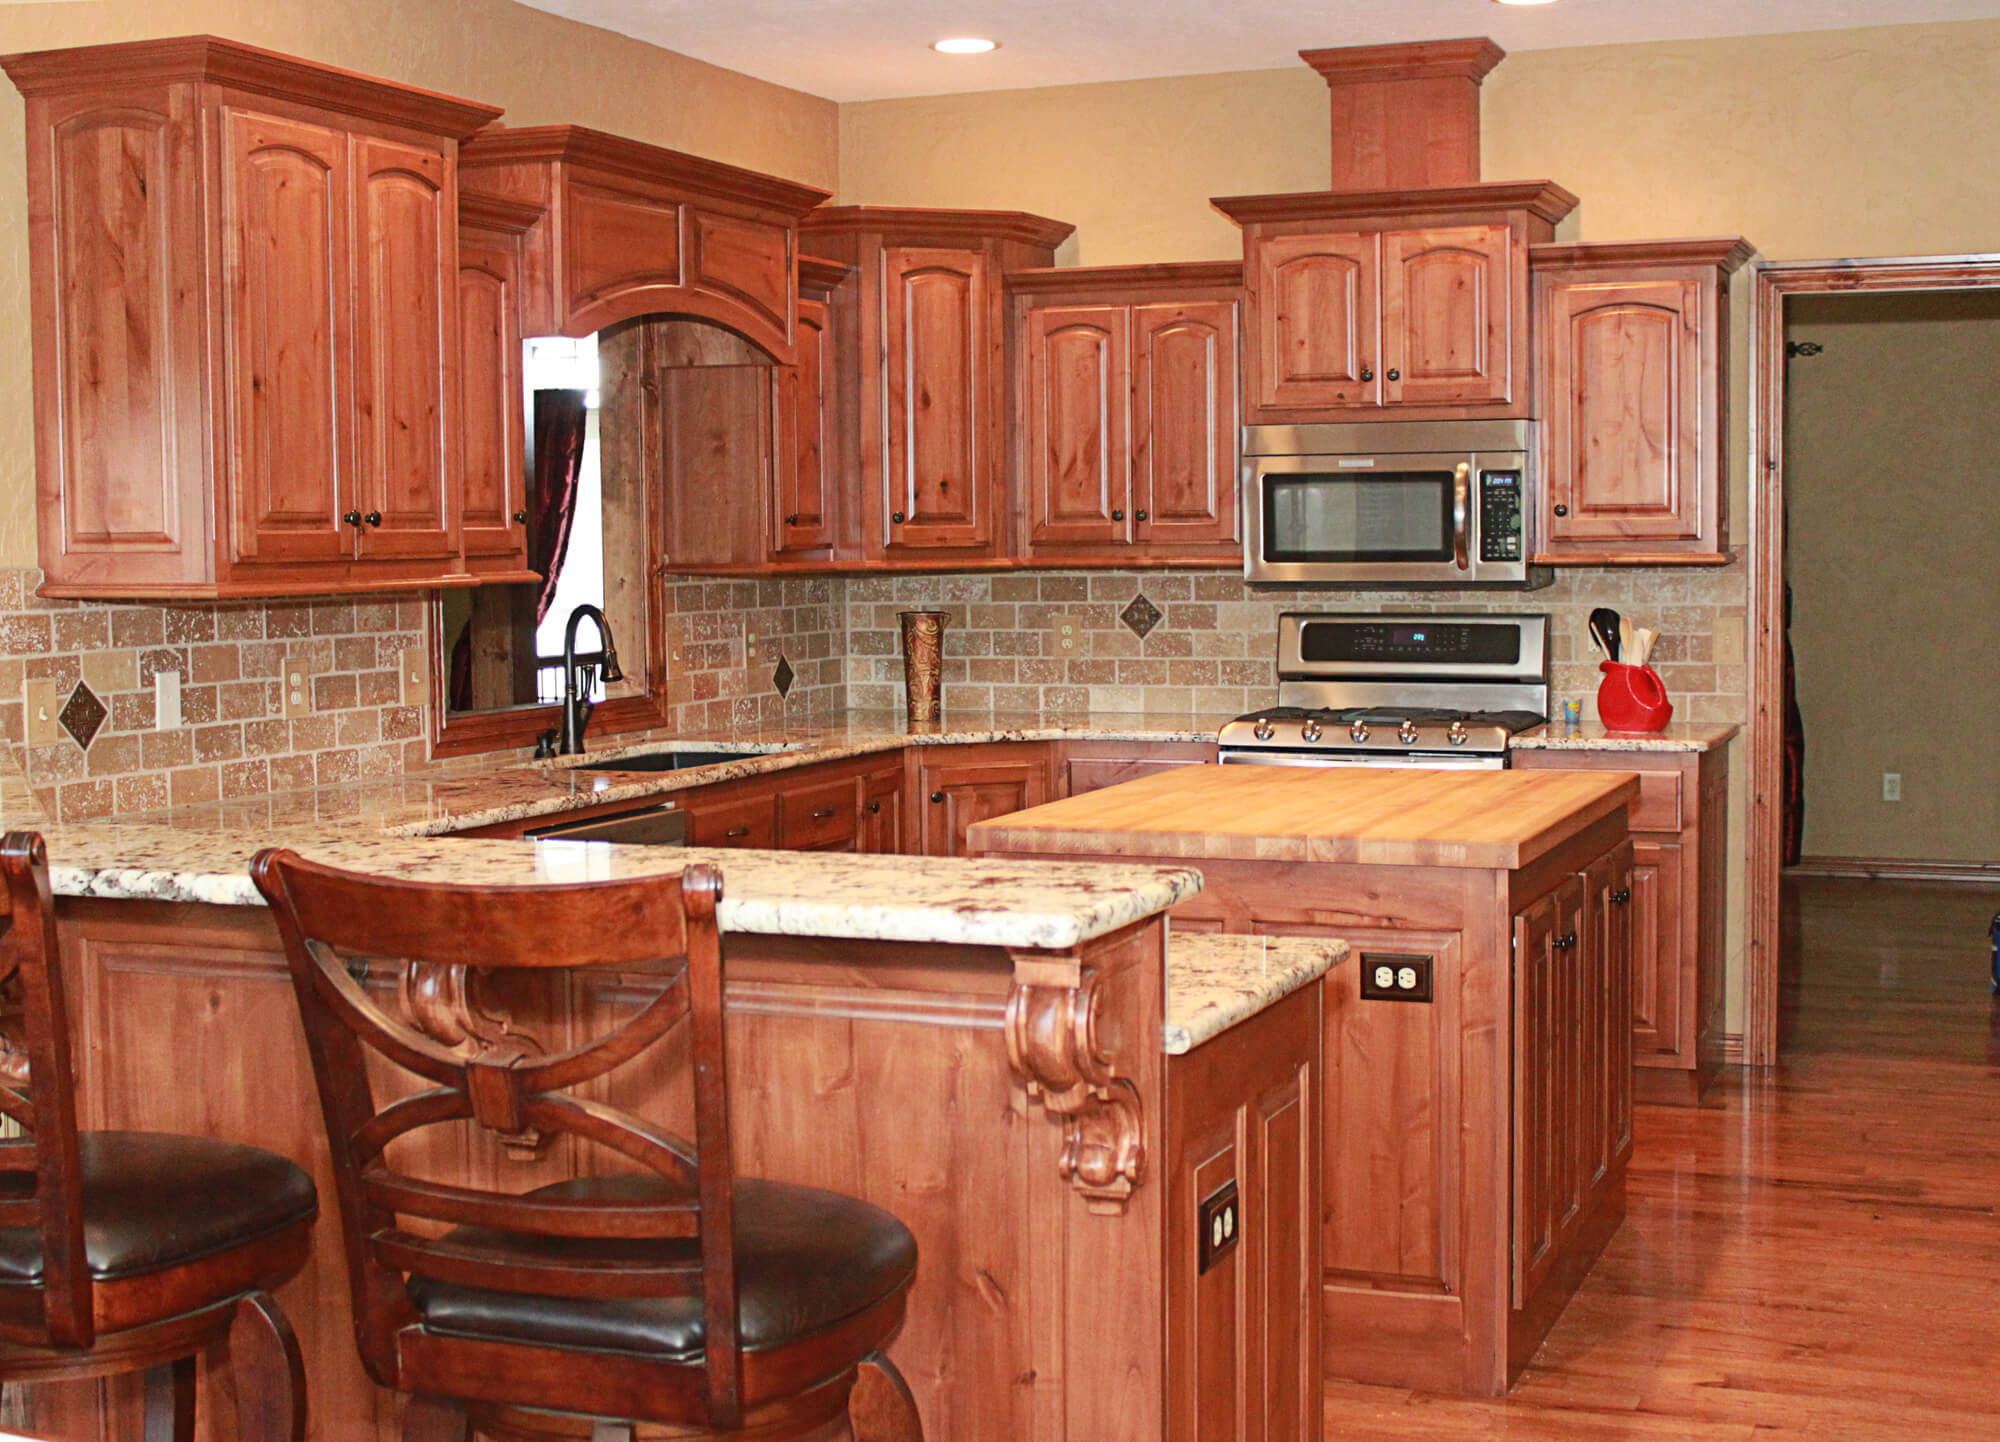 Best Kitchen Gallery: The Cabi S Plus Knotty Alder Kitchen Cabi S of Knotty Kitchen Cabinets on cal-ite.com